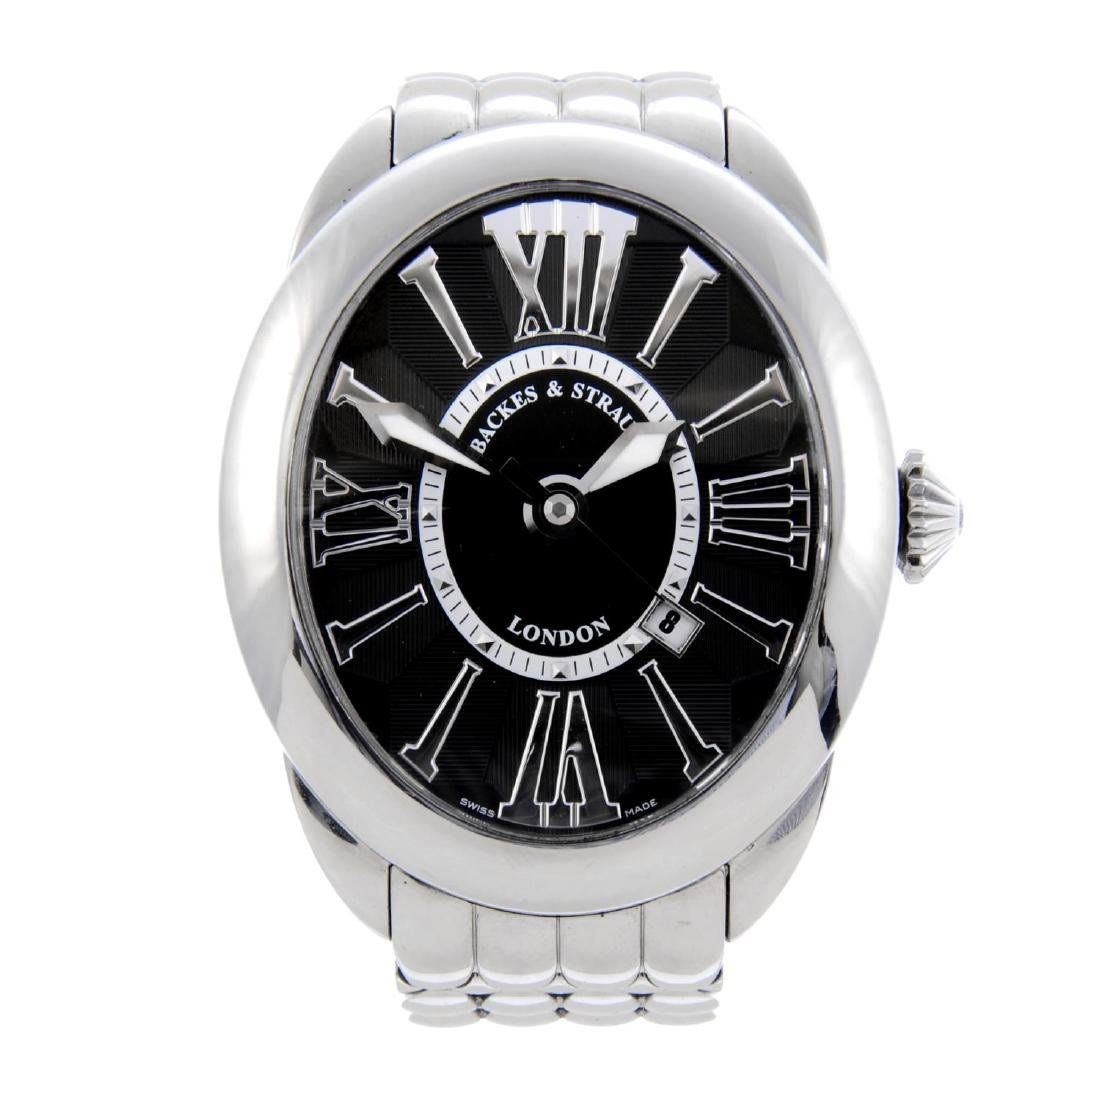 BACKES & STRAUSS - a gentleman's Regent bracelet watch.